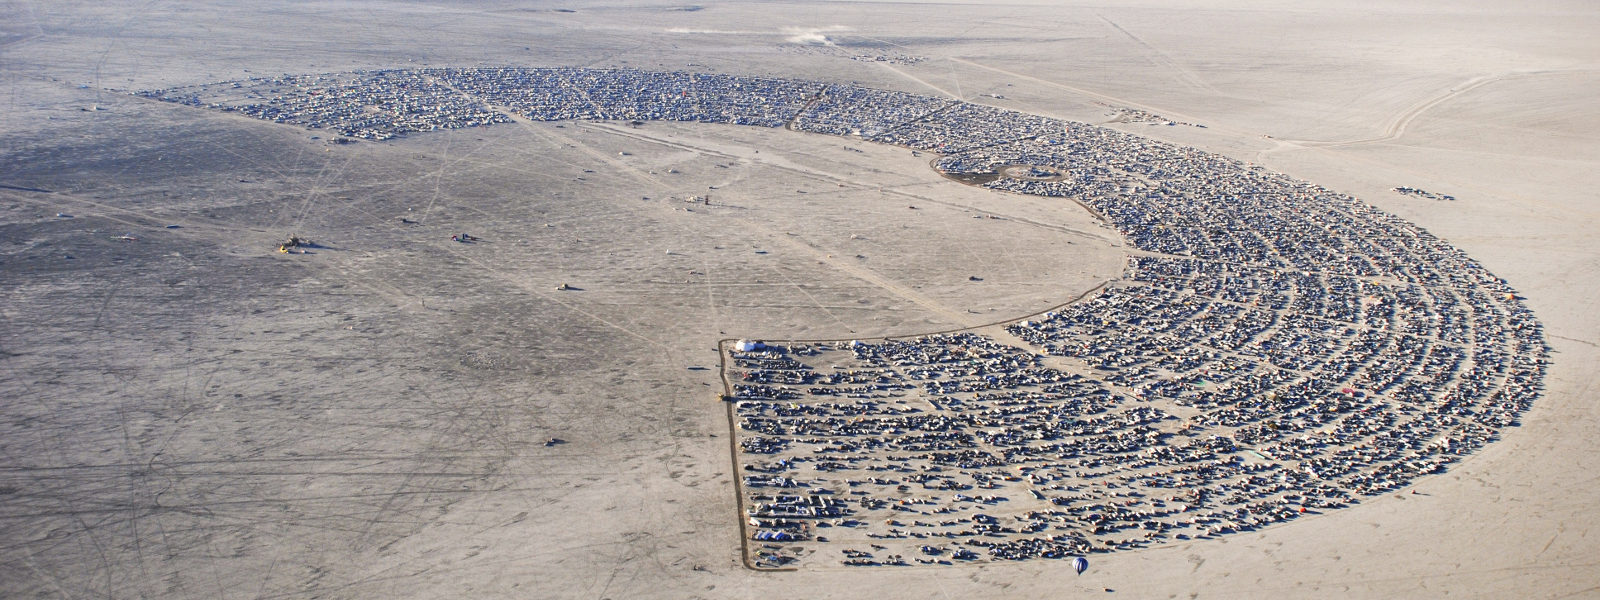 A first look into Burning Man 2019